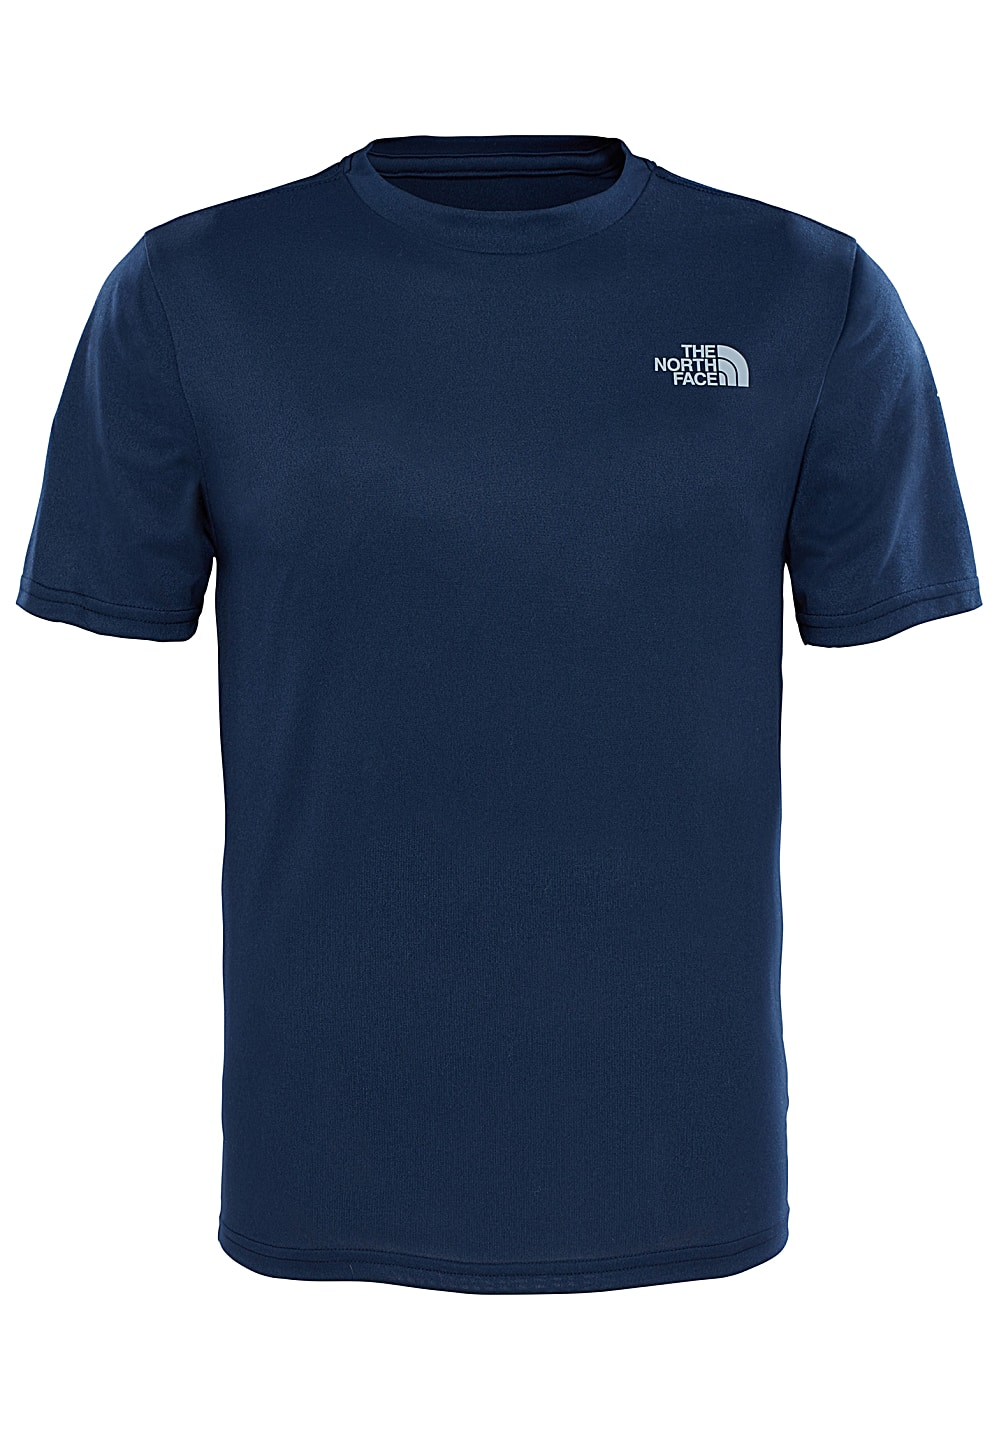 The North Face Reaxion - T-Shirt für Jungs Blau